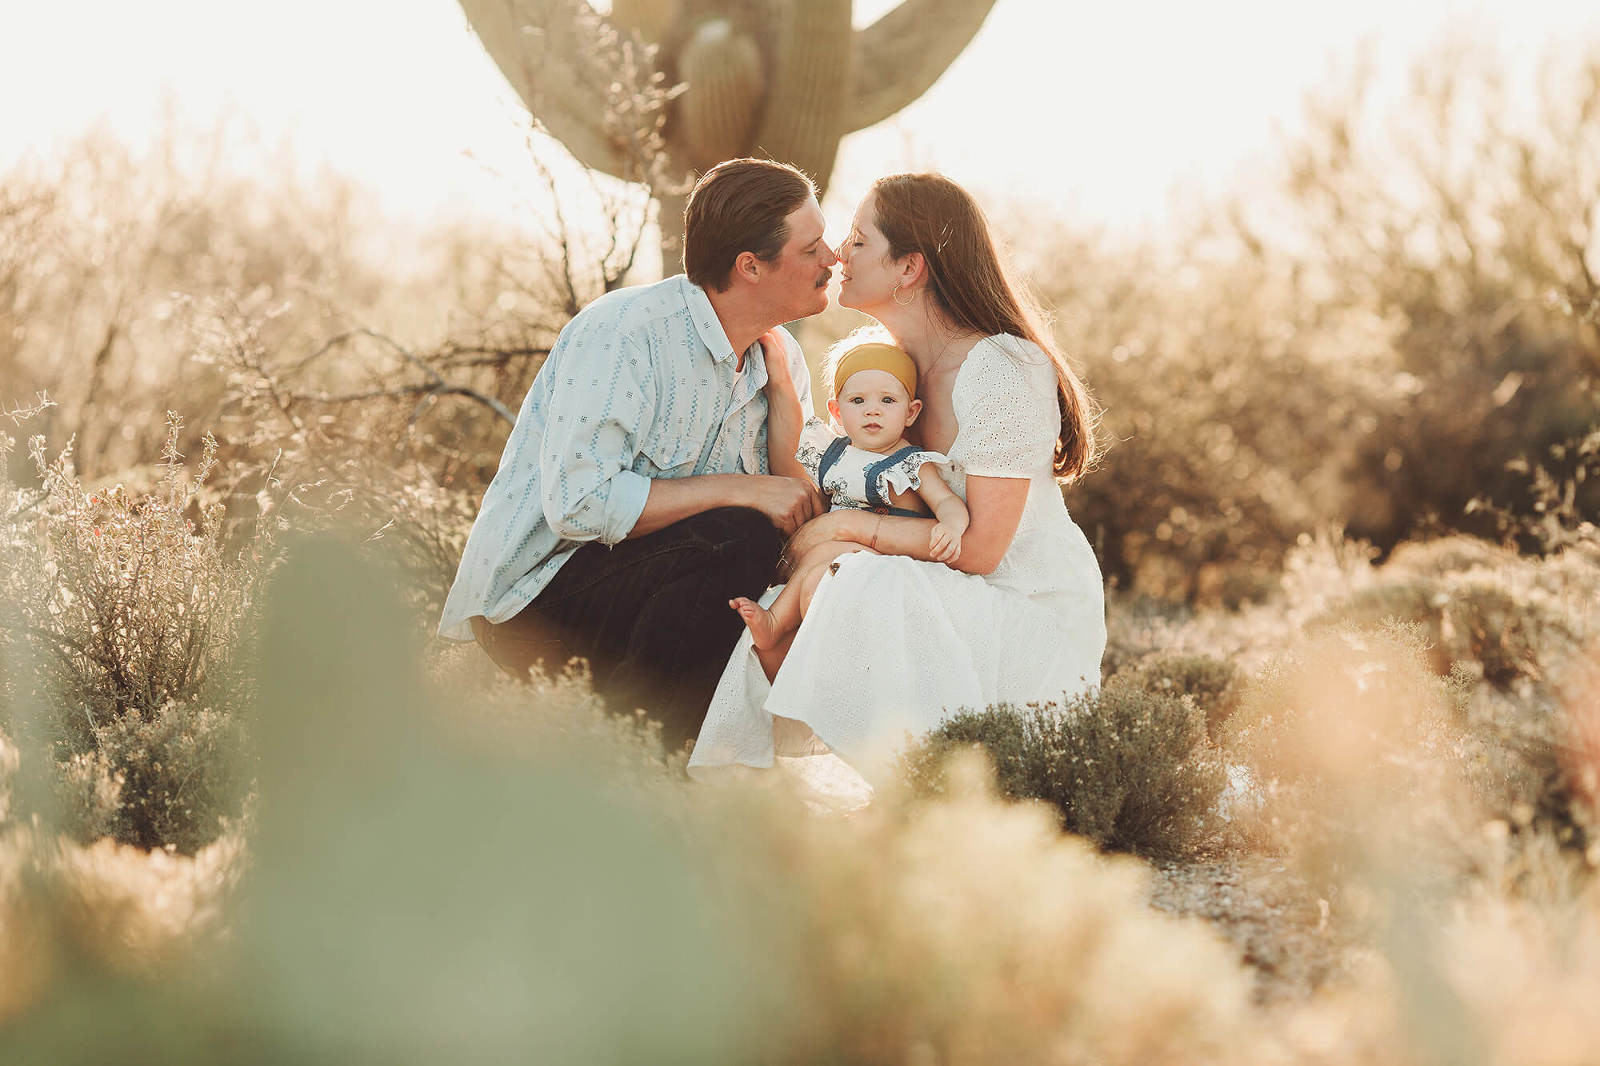 A family of three with mom and dad about to embrace holding their baby daughter under a giant saguaro in Tucson